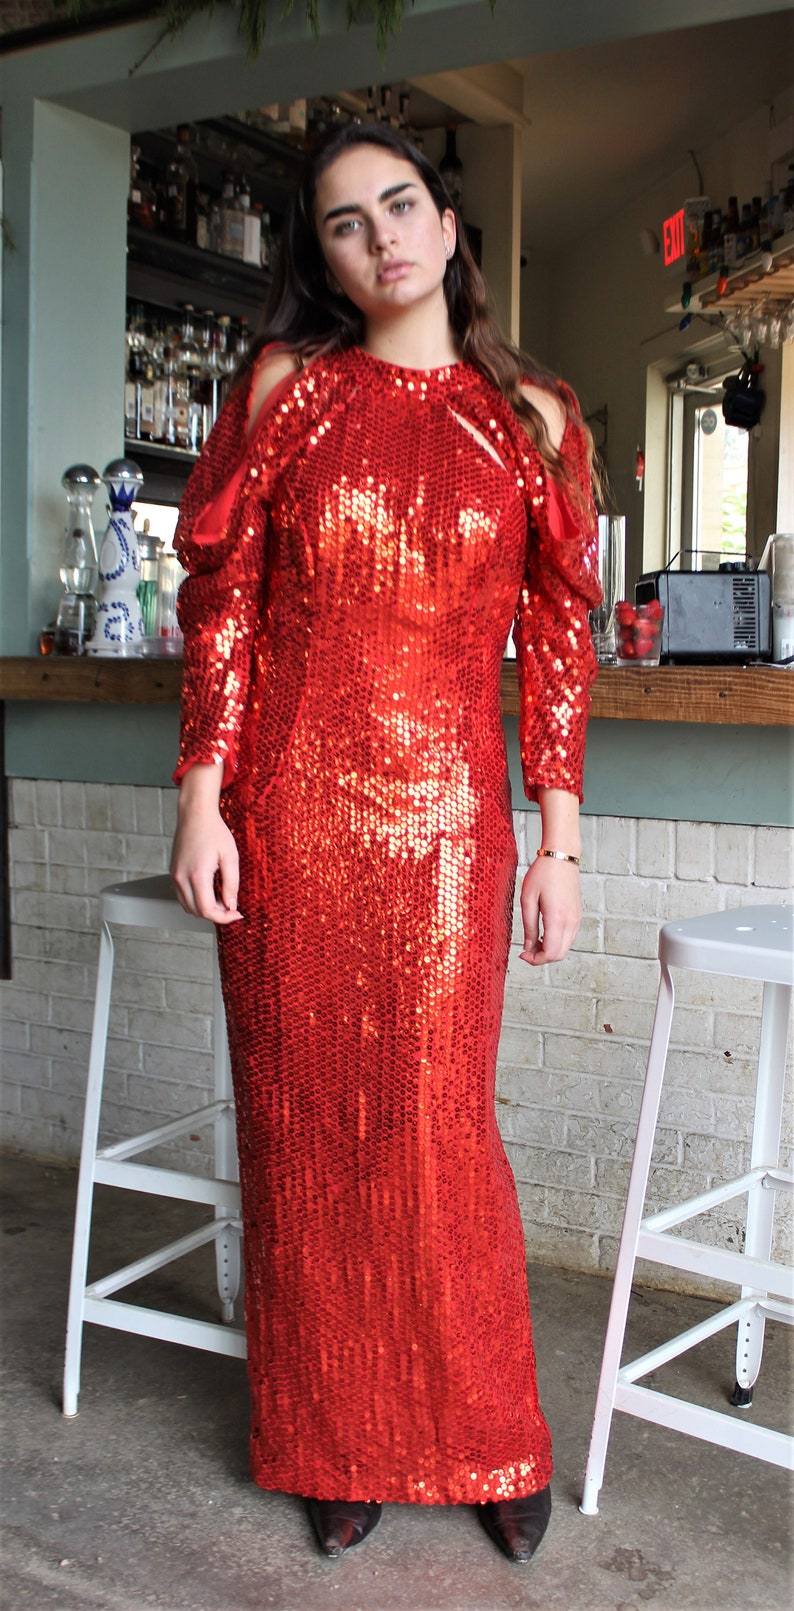 b4b093656e0 Sequin Dress Sequin Gown Red Sequin Dress Red Sequin Gown